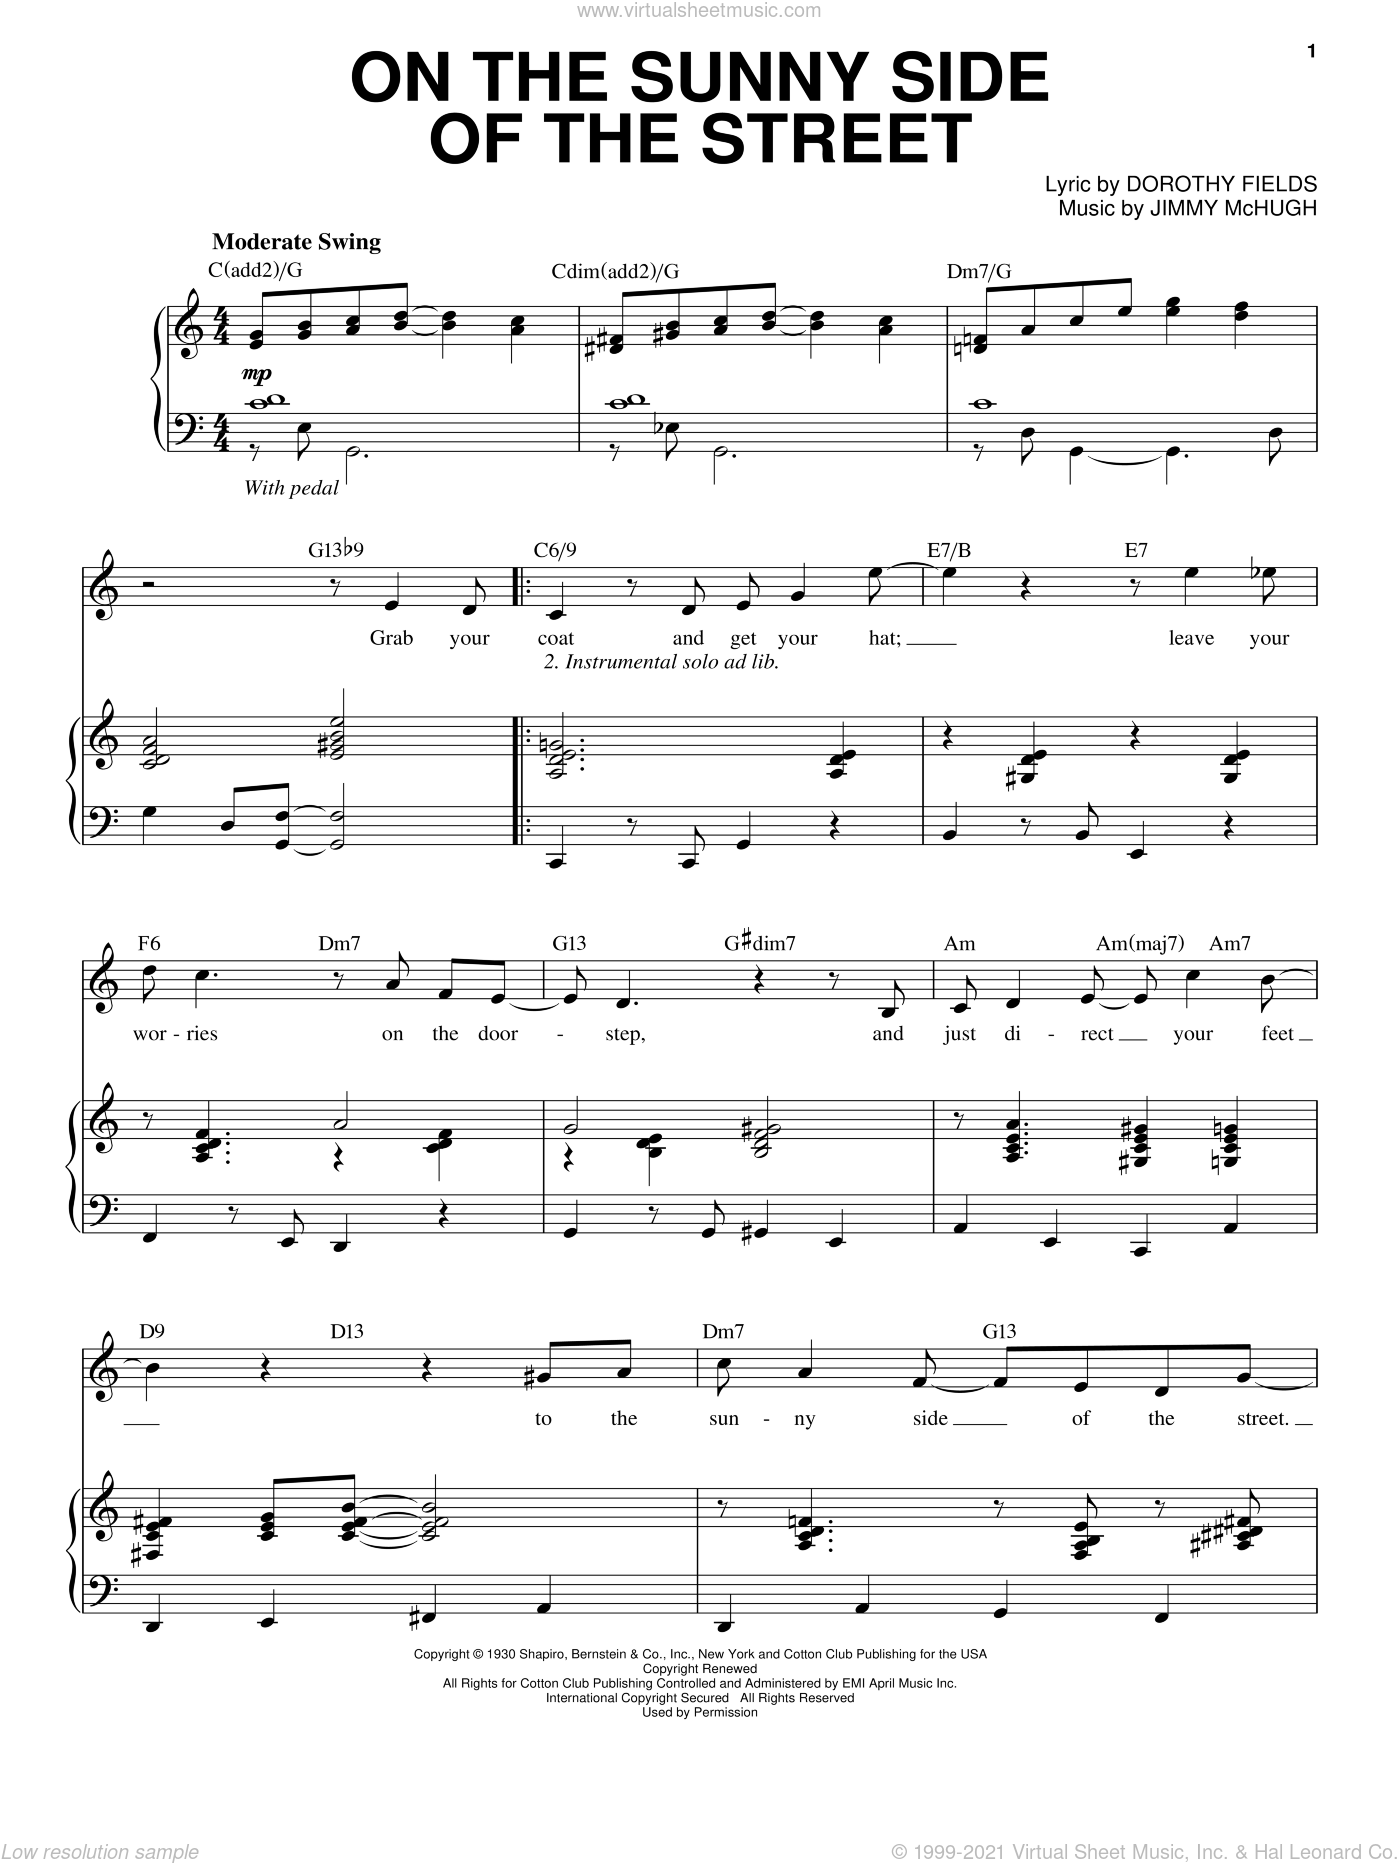 On The Sunny Side Of The Street sheet music for voice and piano by Steve Tyrell, Dorothy Fields and Jimmy McHugh, intermediate skill level